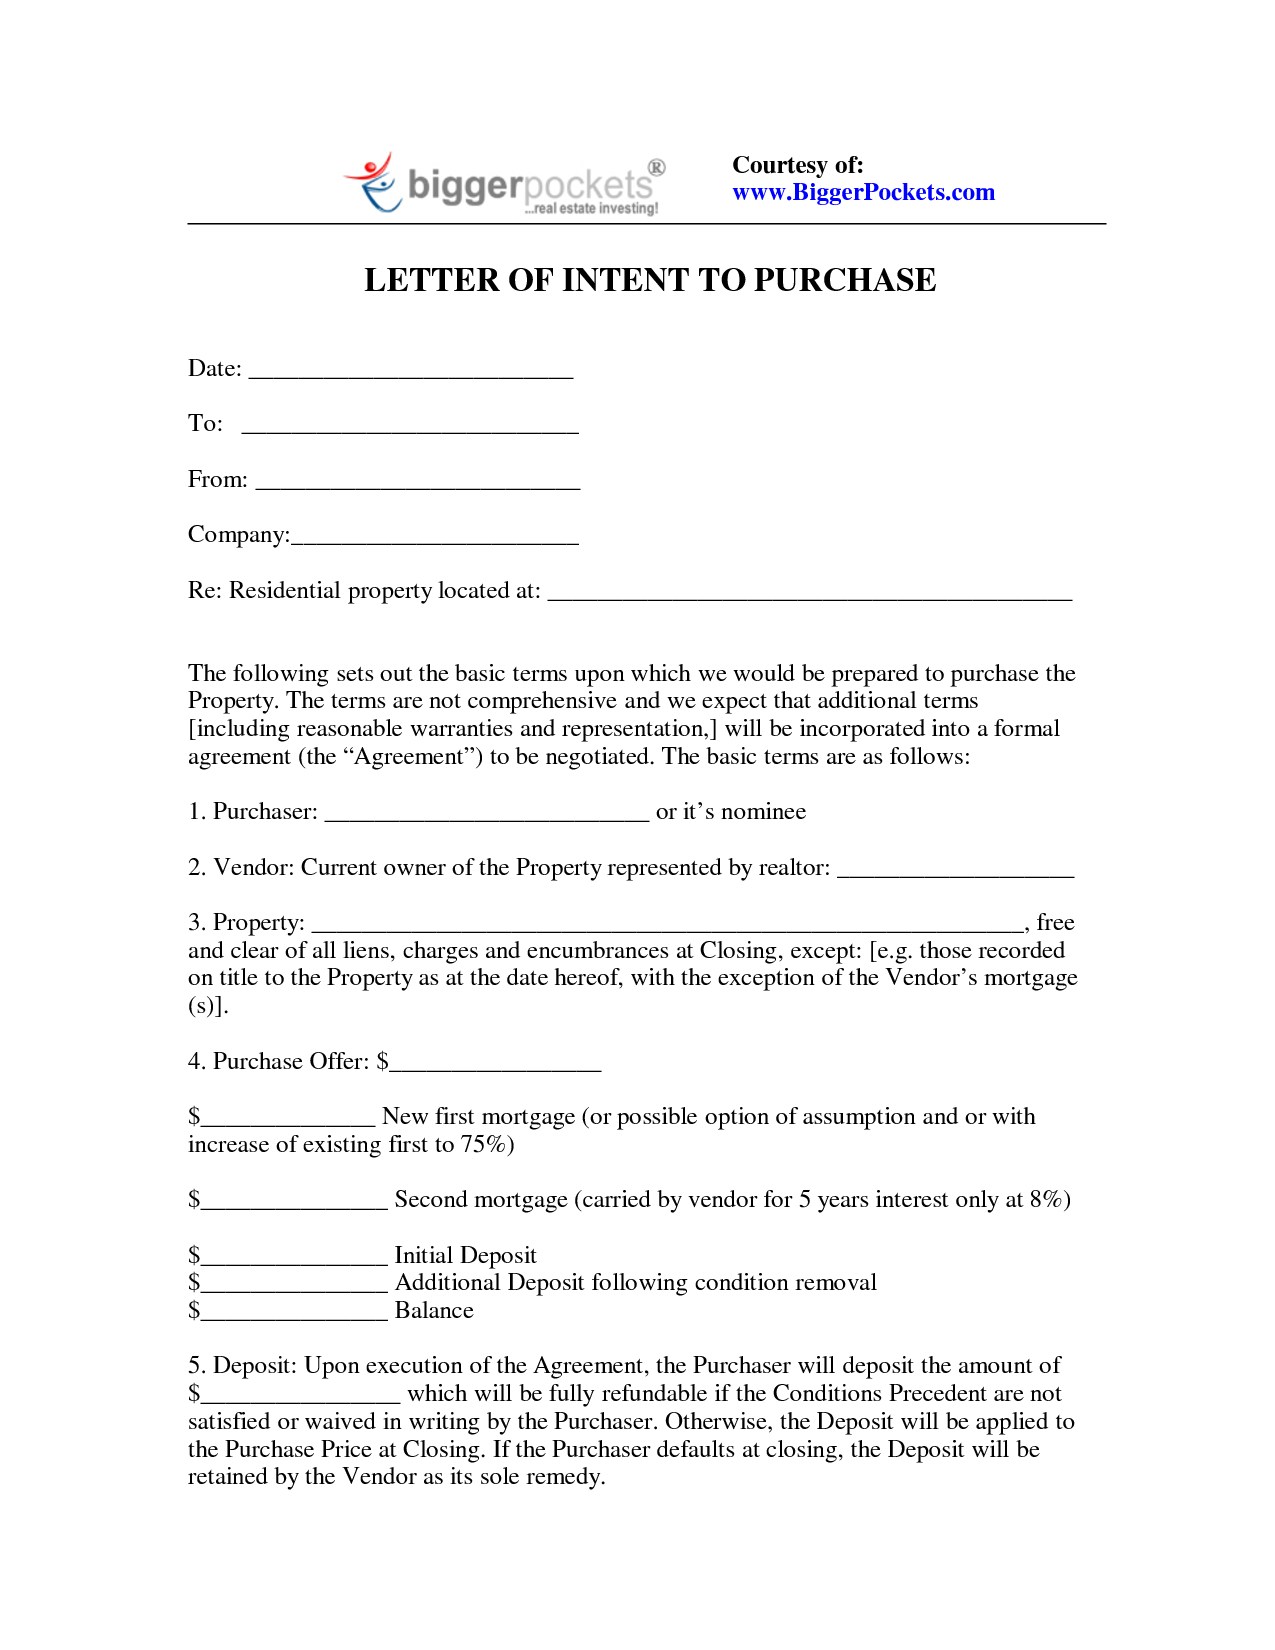 Letter Of Intent to Purchase Land Template - Best Sf Template Proposal Property Buying Letter Intent for